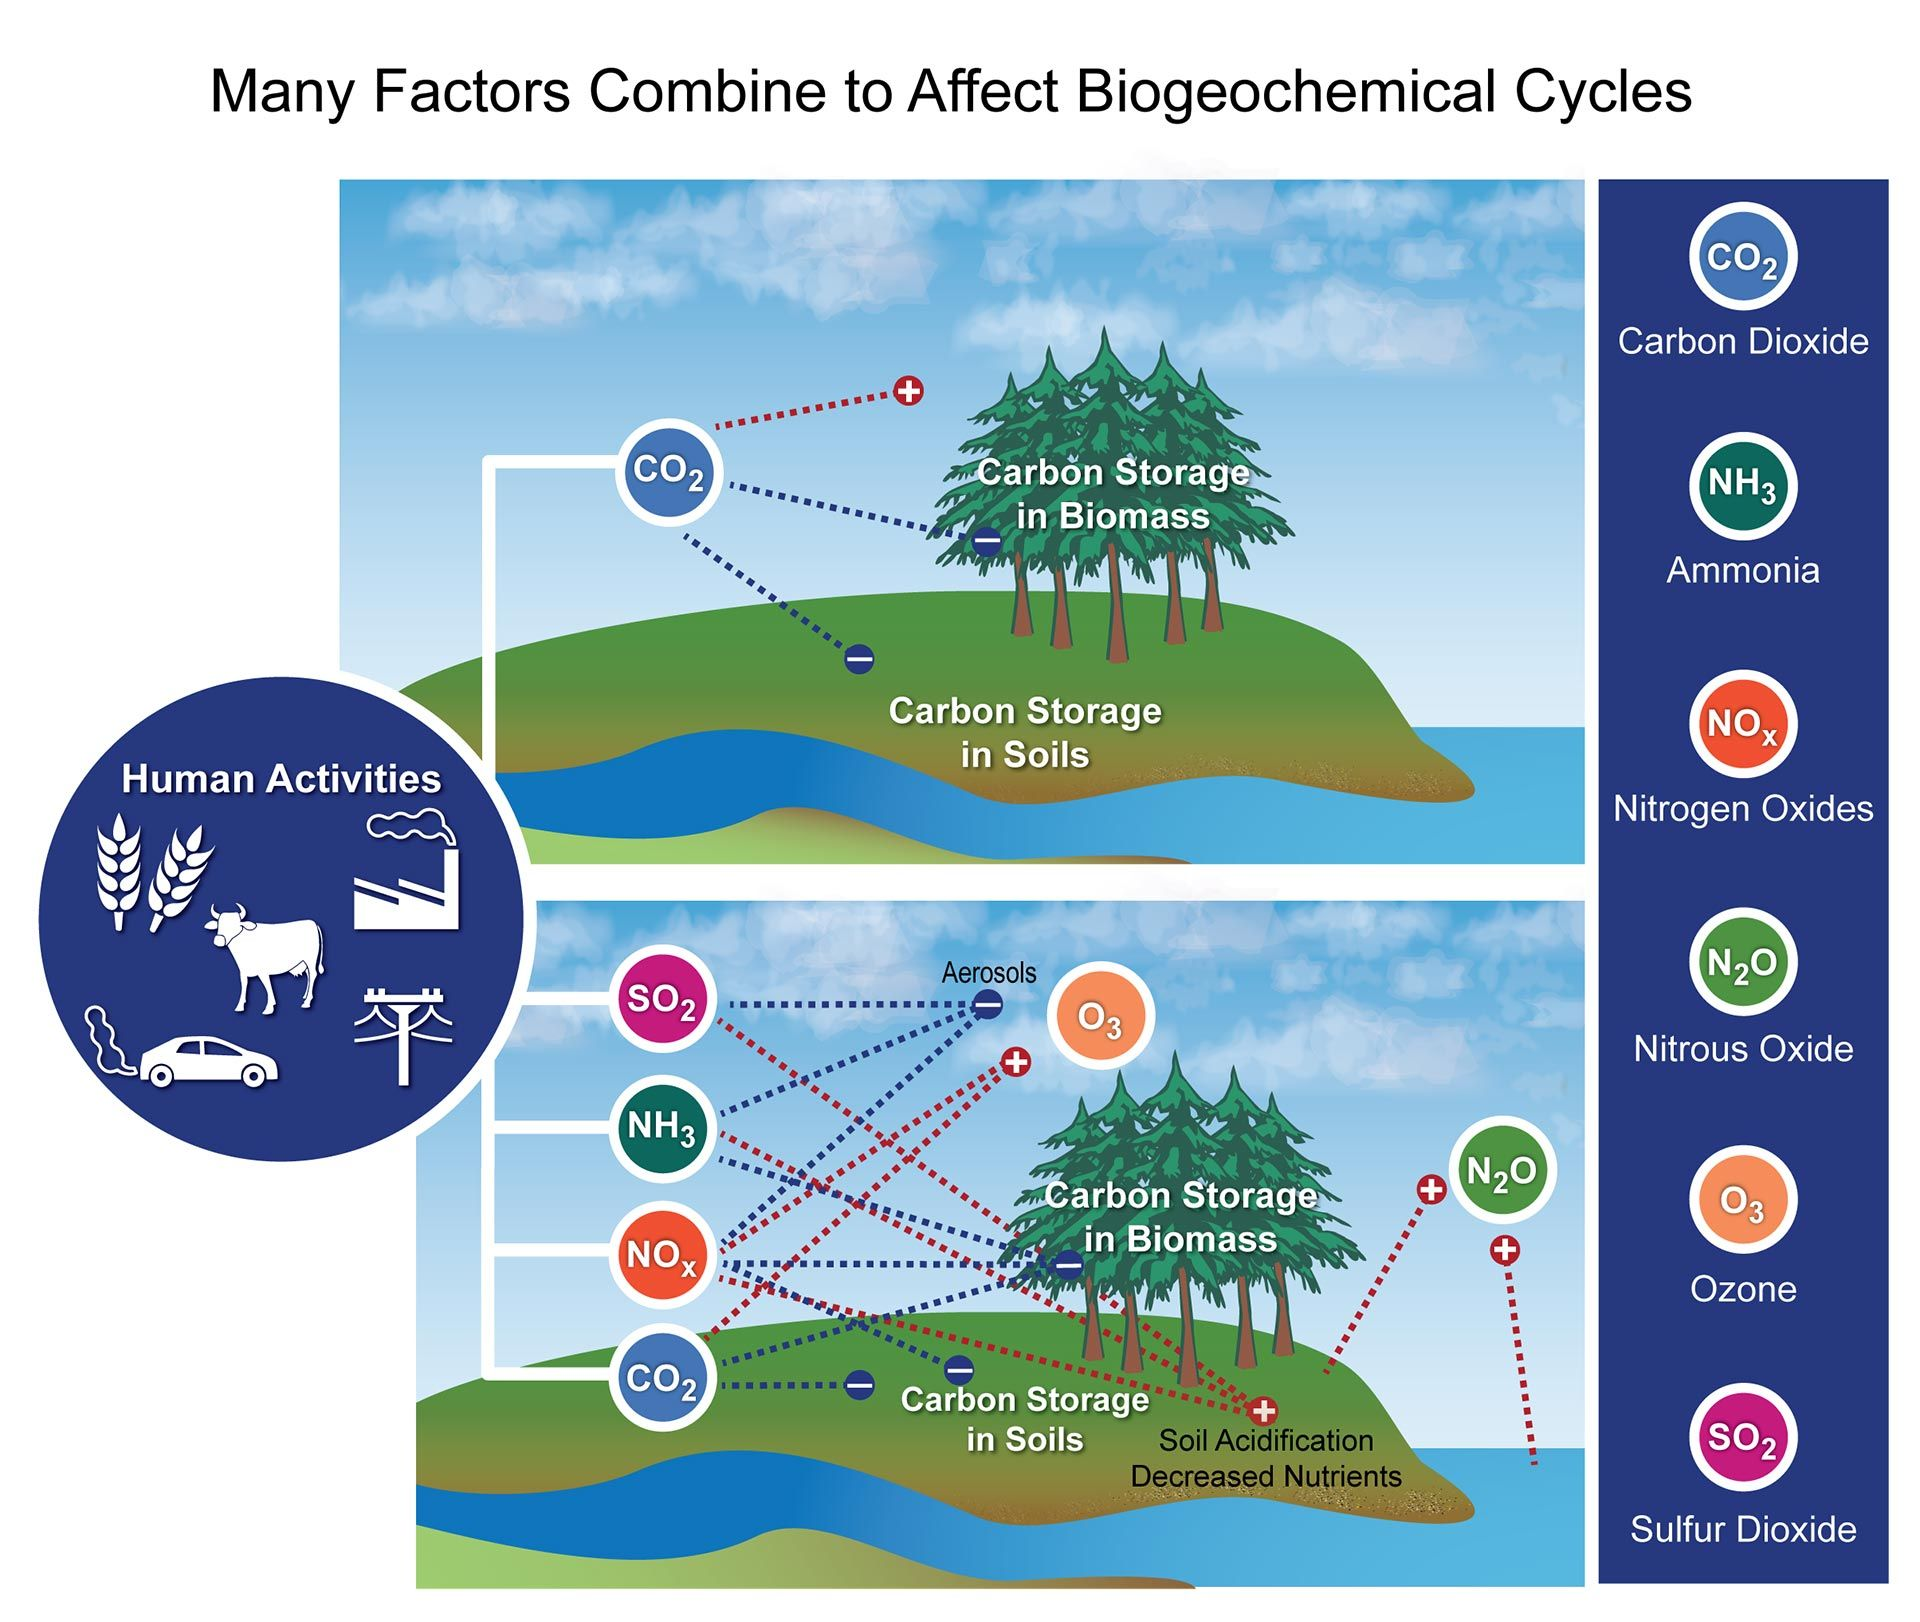 Many Factors Combine To Affect Biogeochemical Cycles